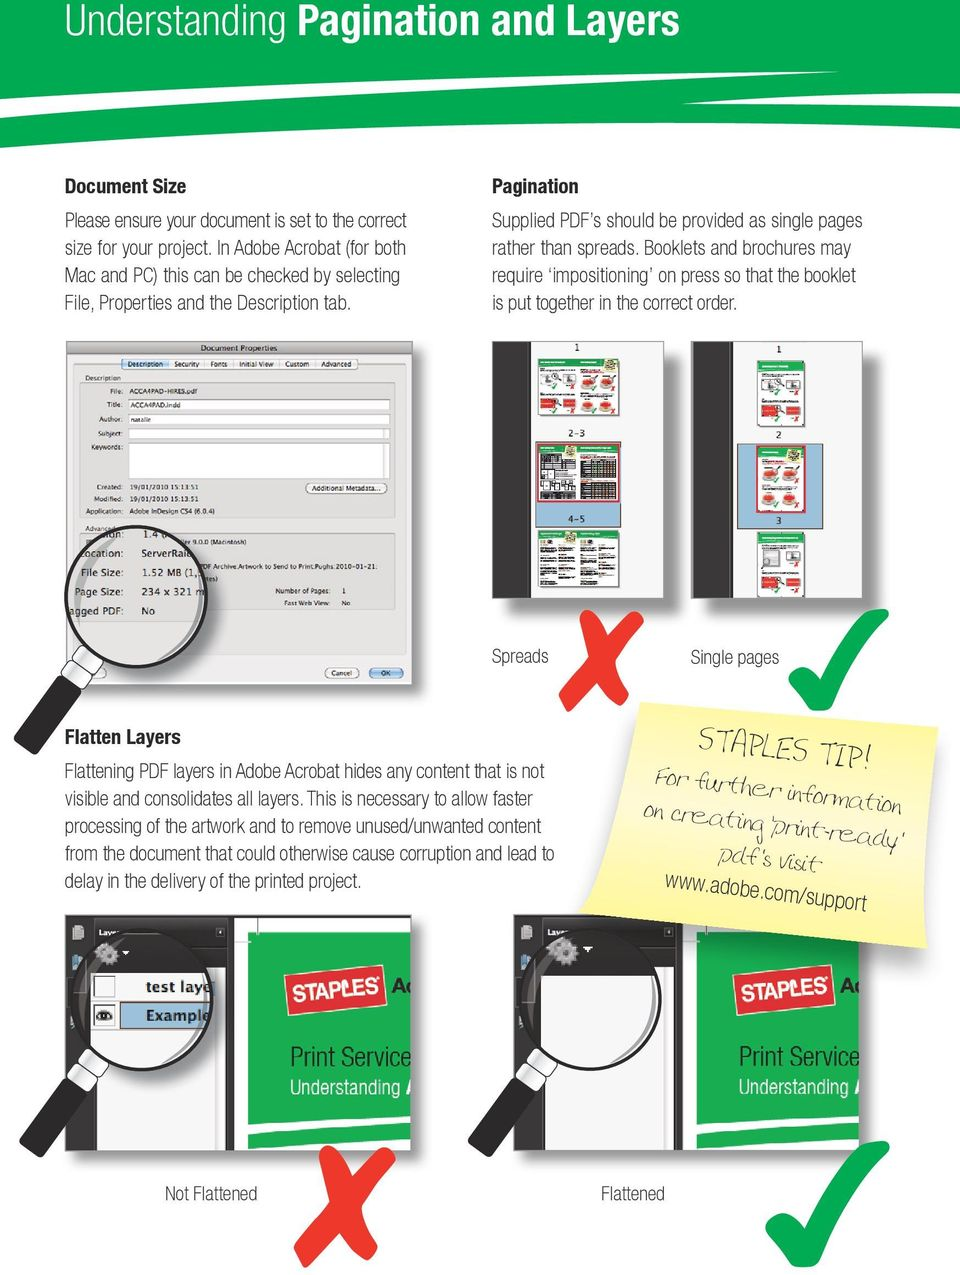 Booklets and brochures may require impositioning on press so that the booklet is put together in the correct order.